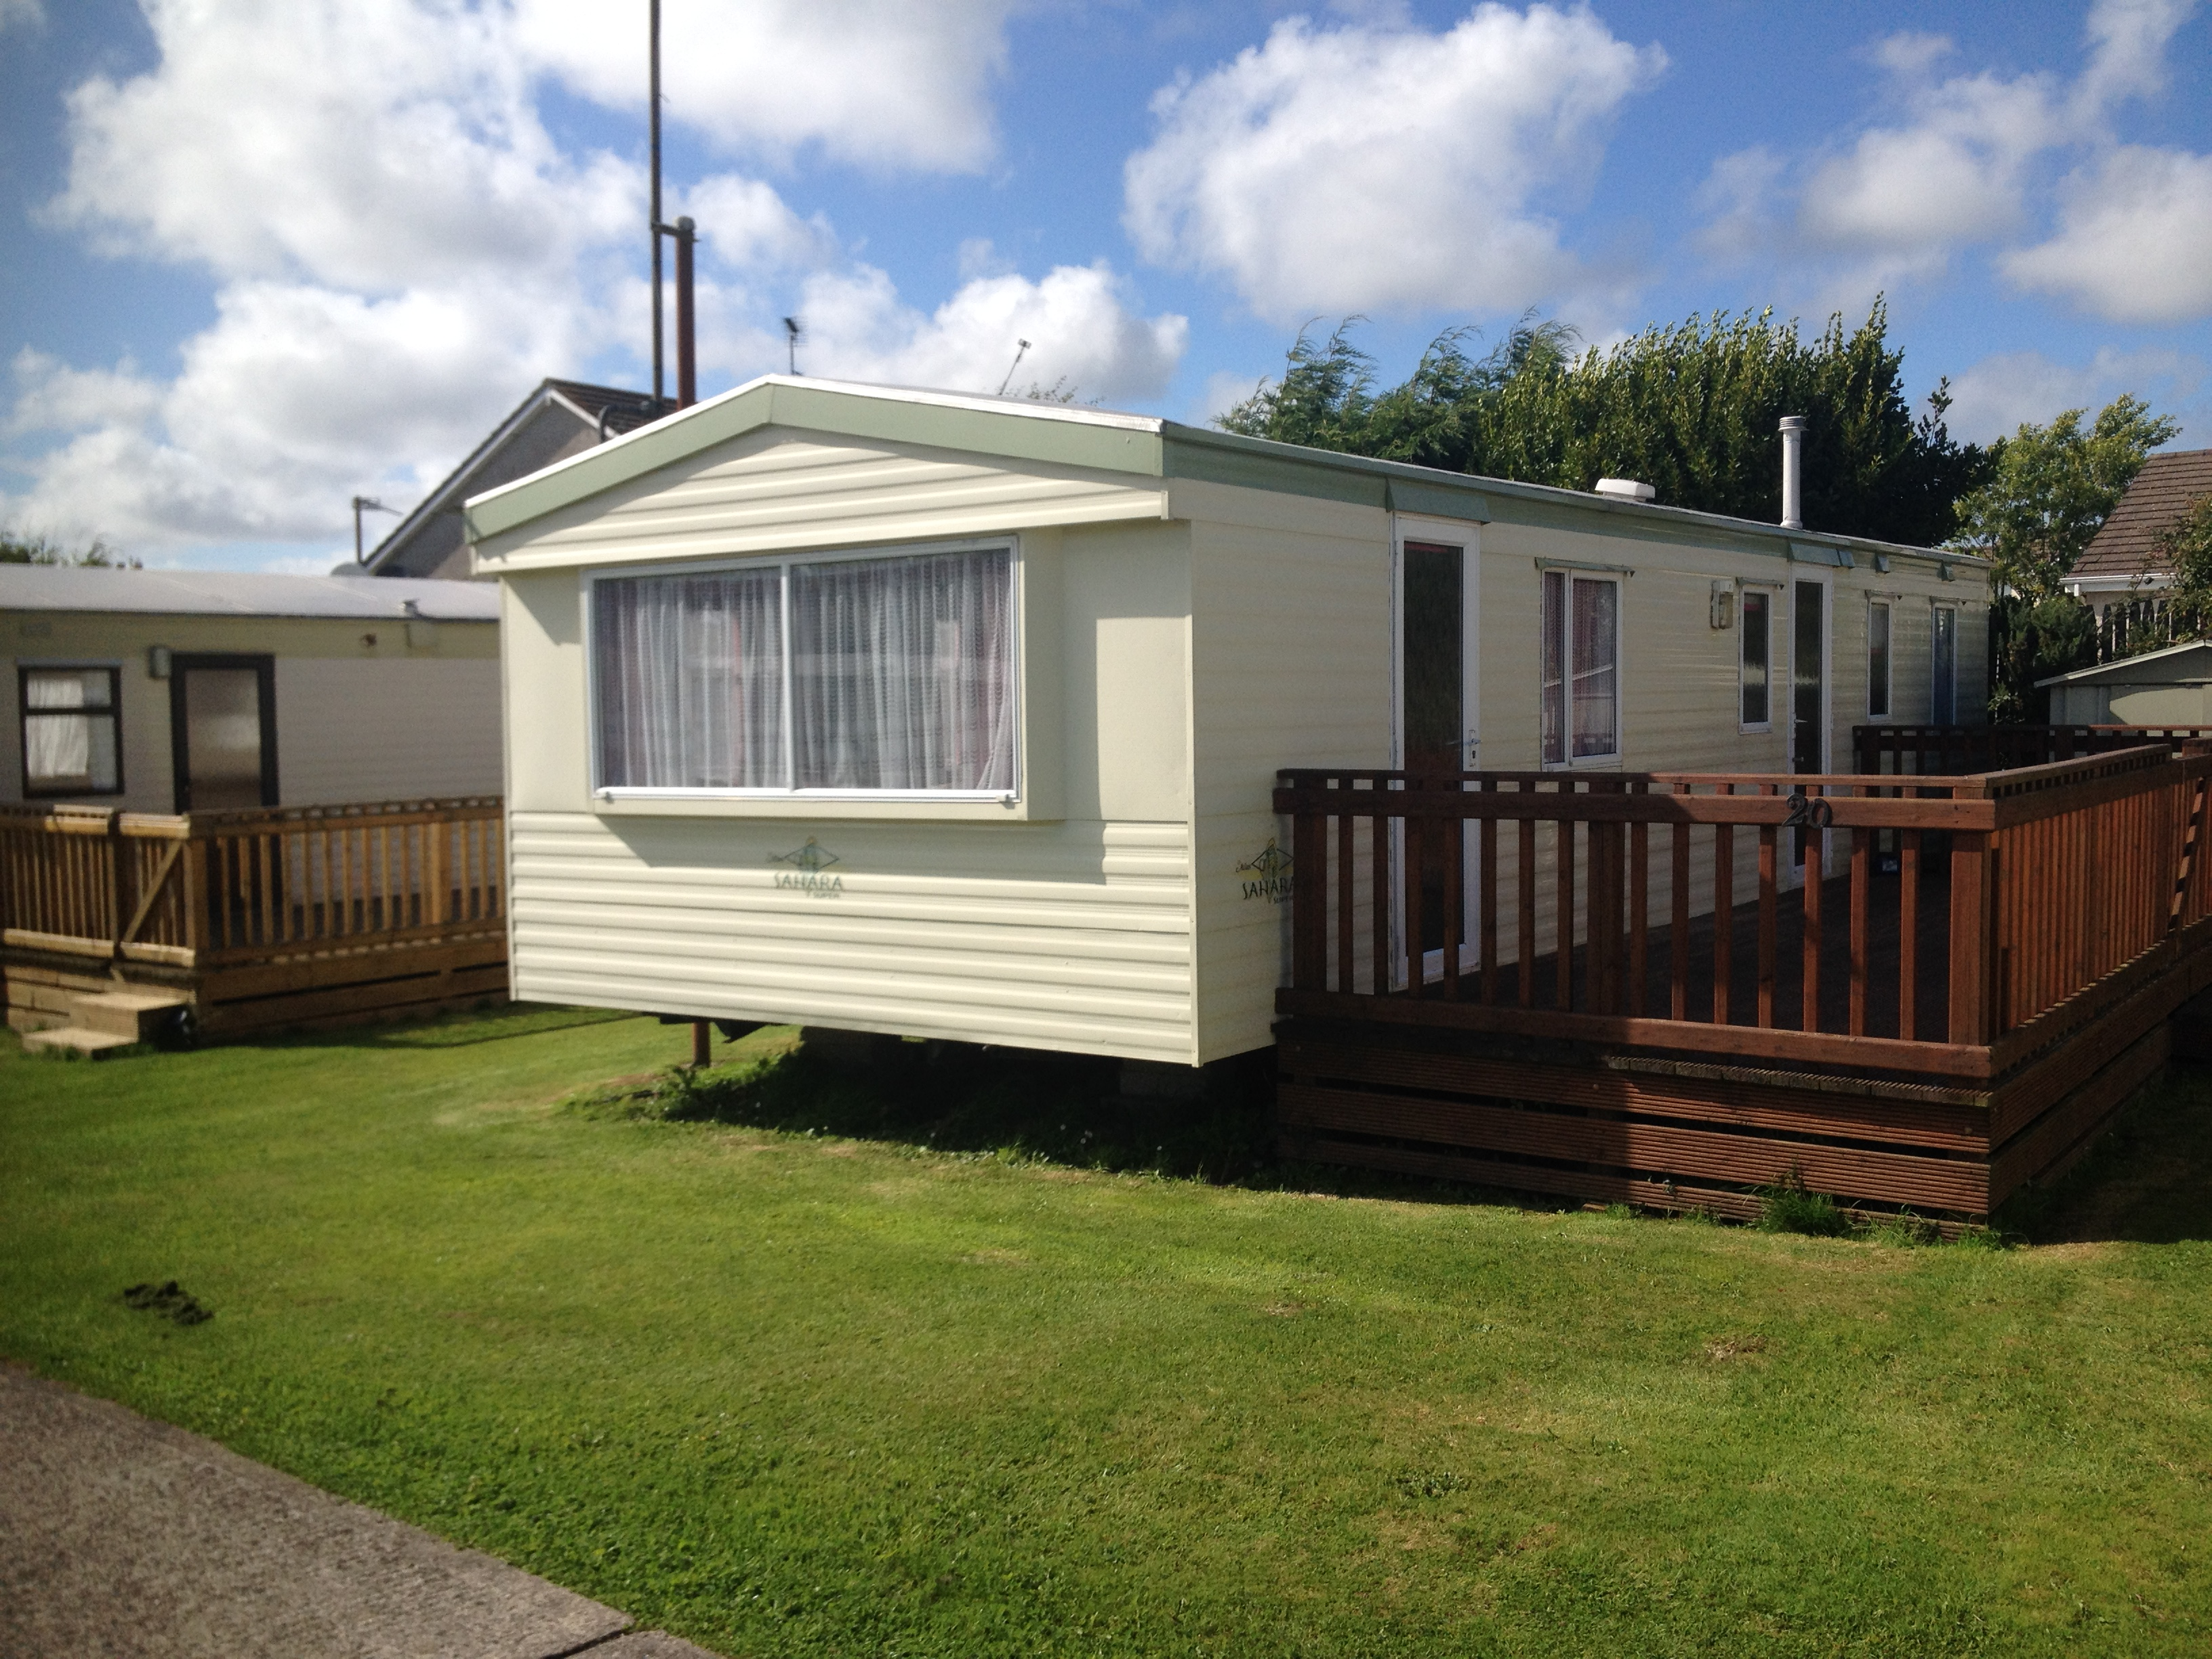 S&E Farrells holiday park